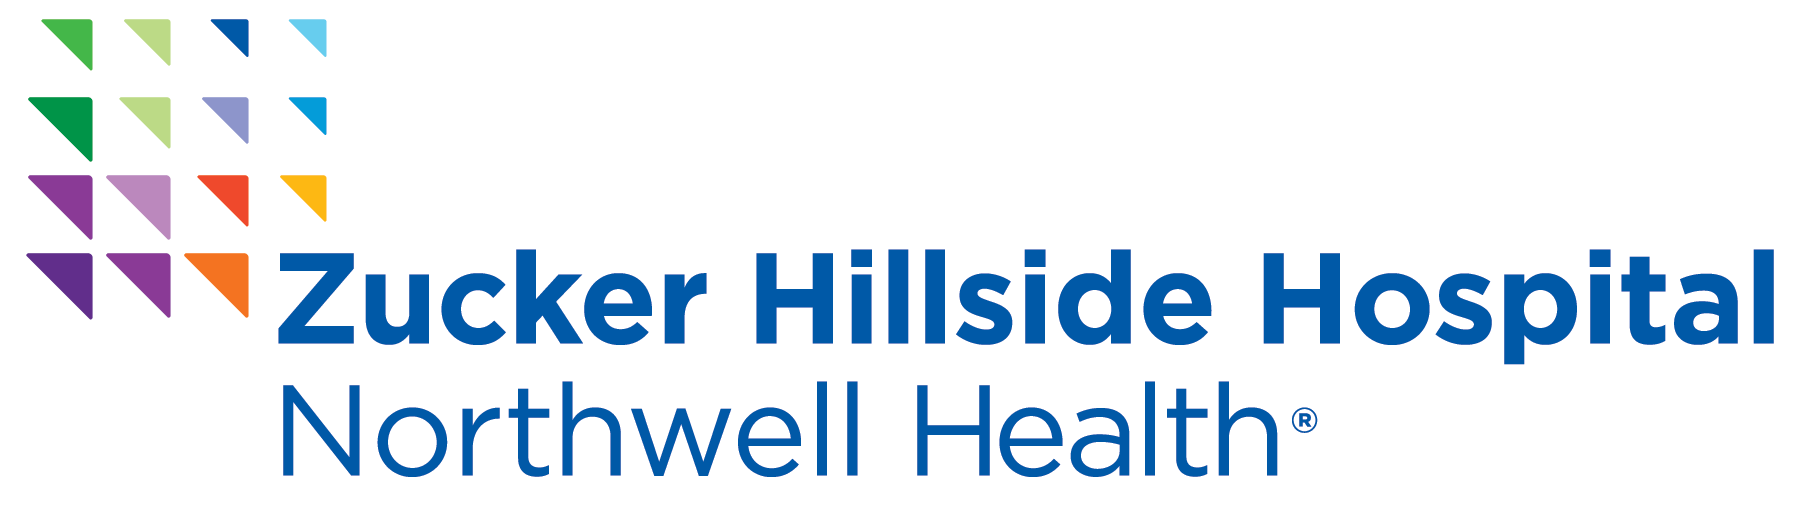 Zucker Hillside Hospital Logo